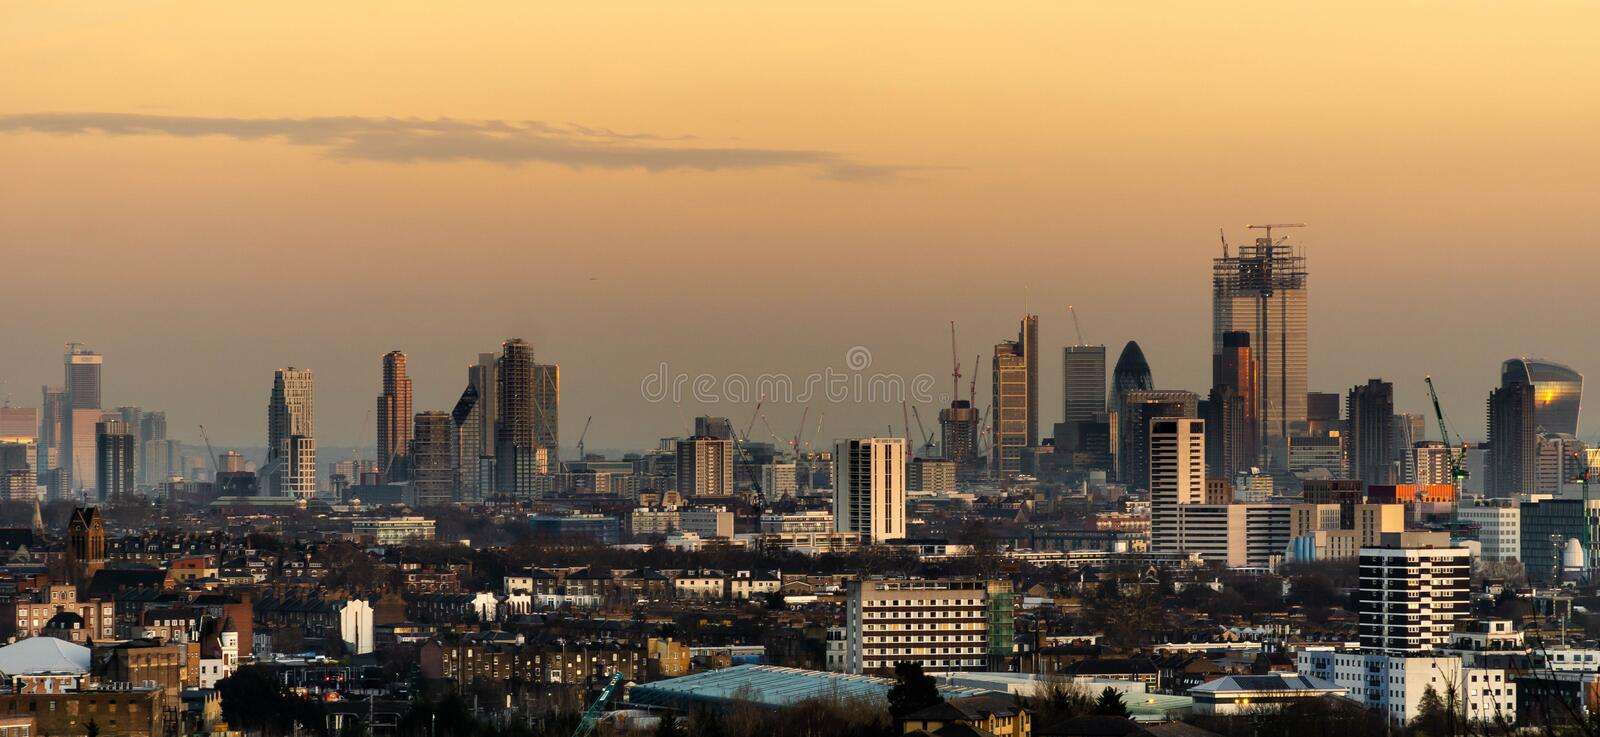 Stadt von London stockfotos